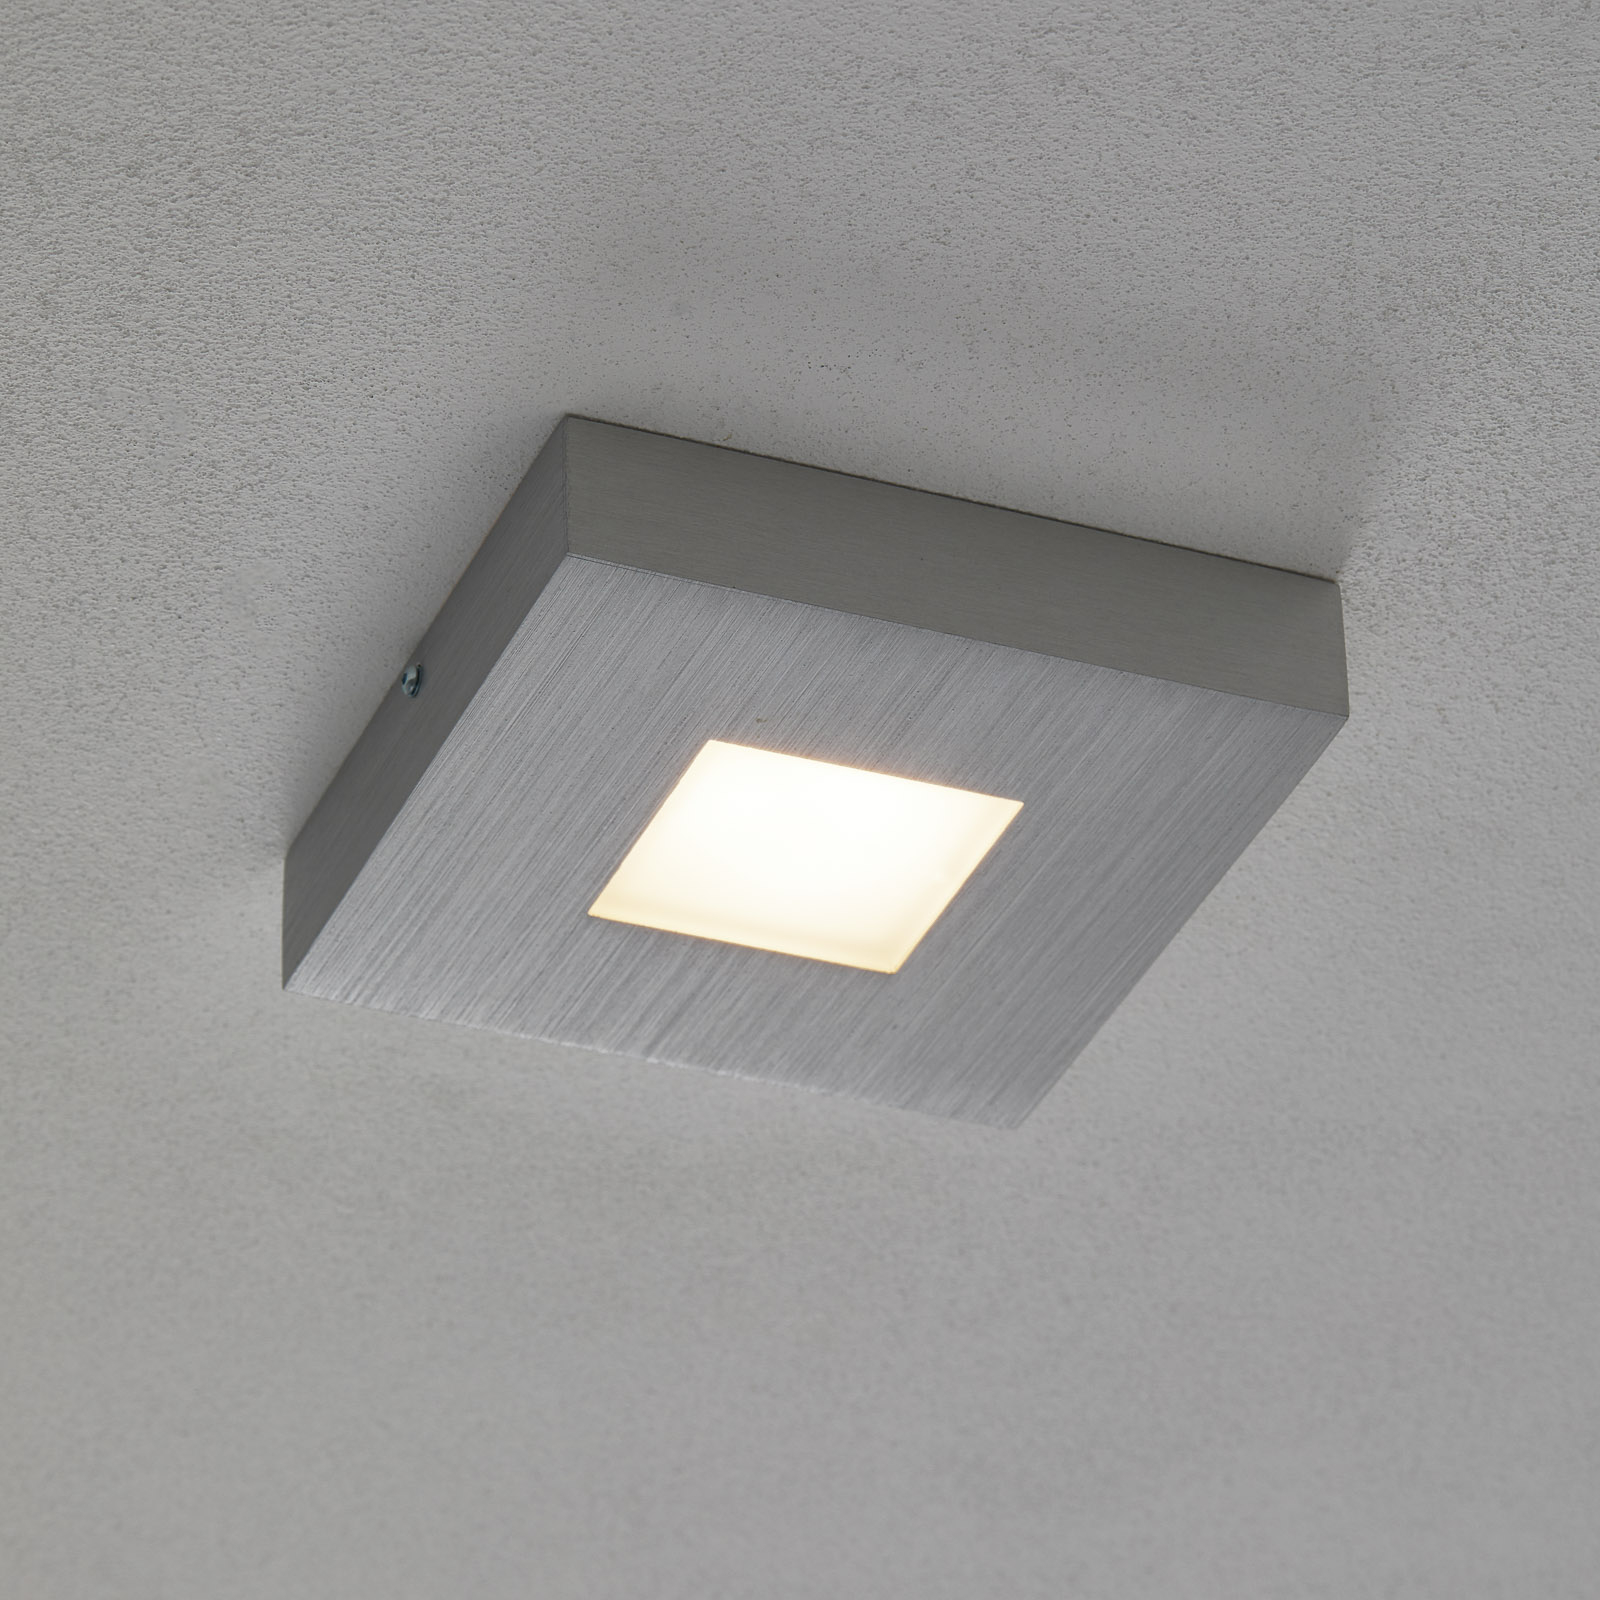 Cubus - square LED ceiling light, dimmable_1556133_1